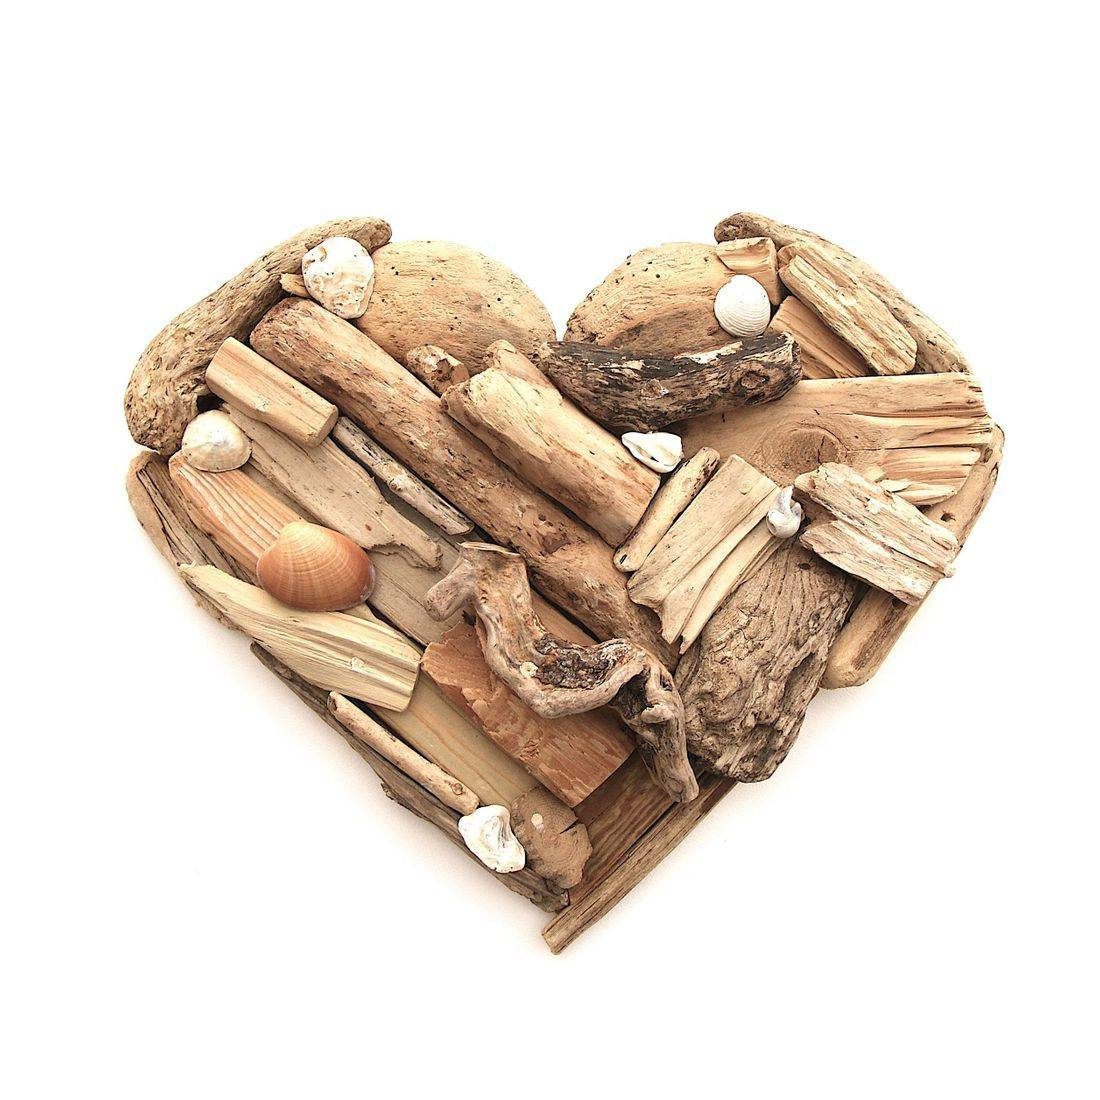 Driftwood Heart 9 Extra large